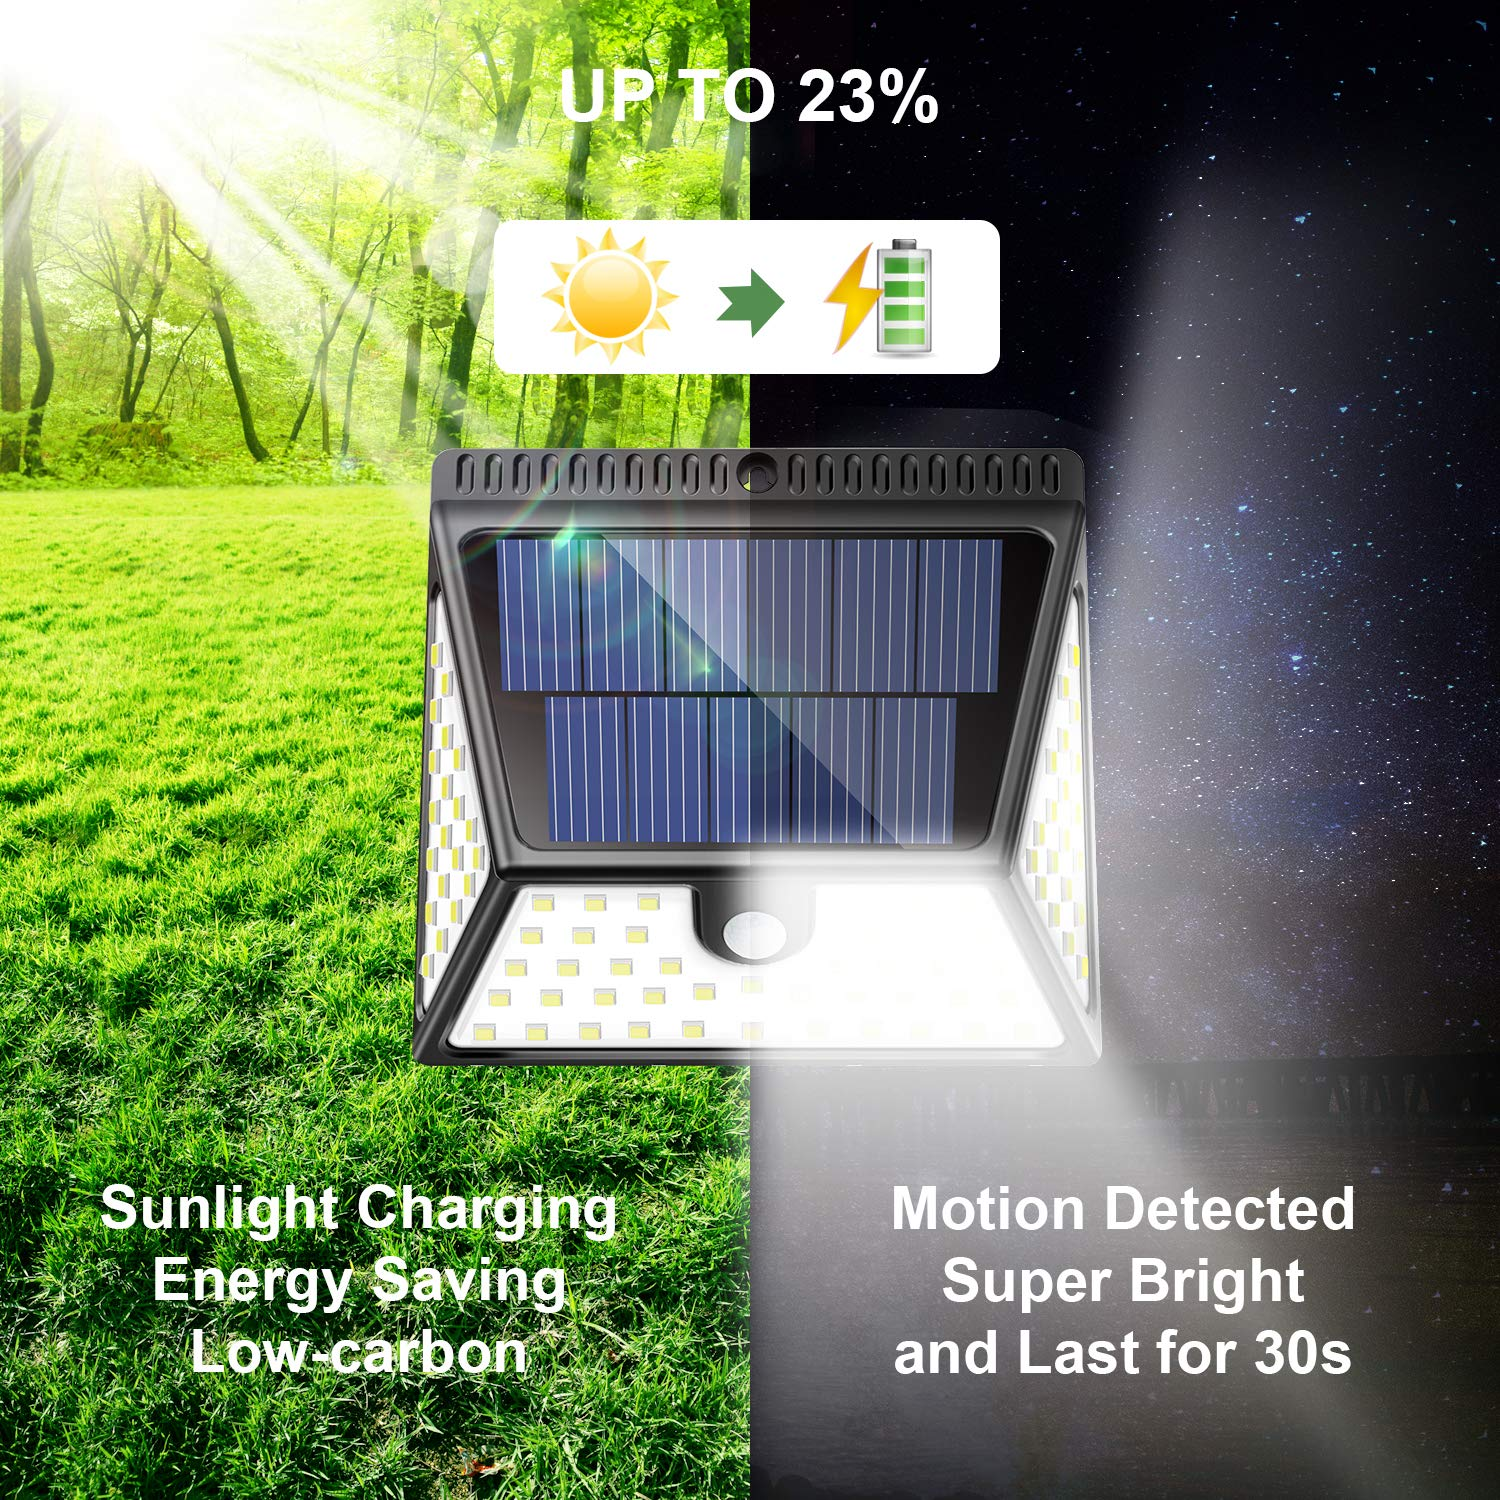 Motion Sensor Light Outdoor with Wide Angle Illumination,82 LEDs Outdoor Solar Lights Waterproof Wall Light Wireless Security Night Light for Driveway Garden Step Stair Fence Deck 4pack